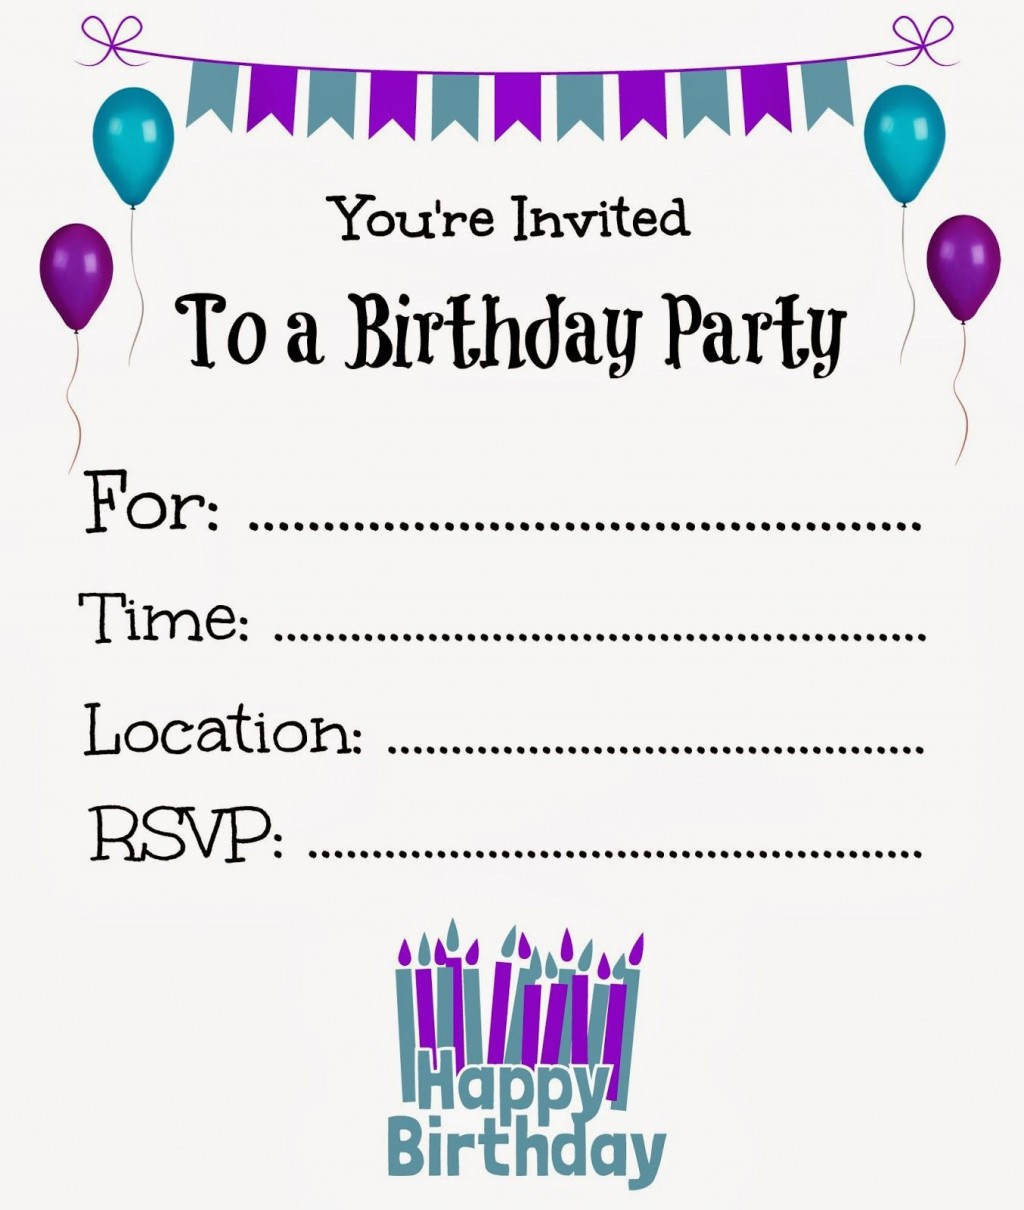 009 Stunning Free Party Invitation Template With Photo Idea  Christma PhotoshopLarge